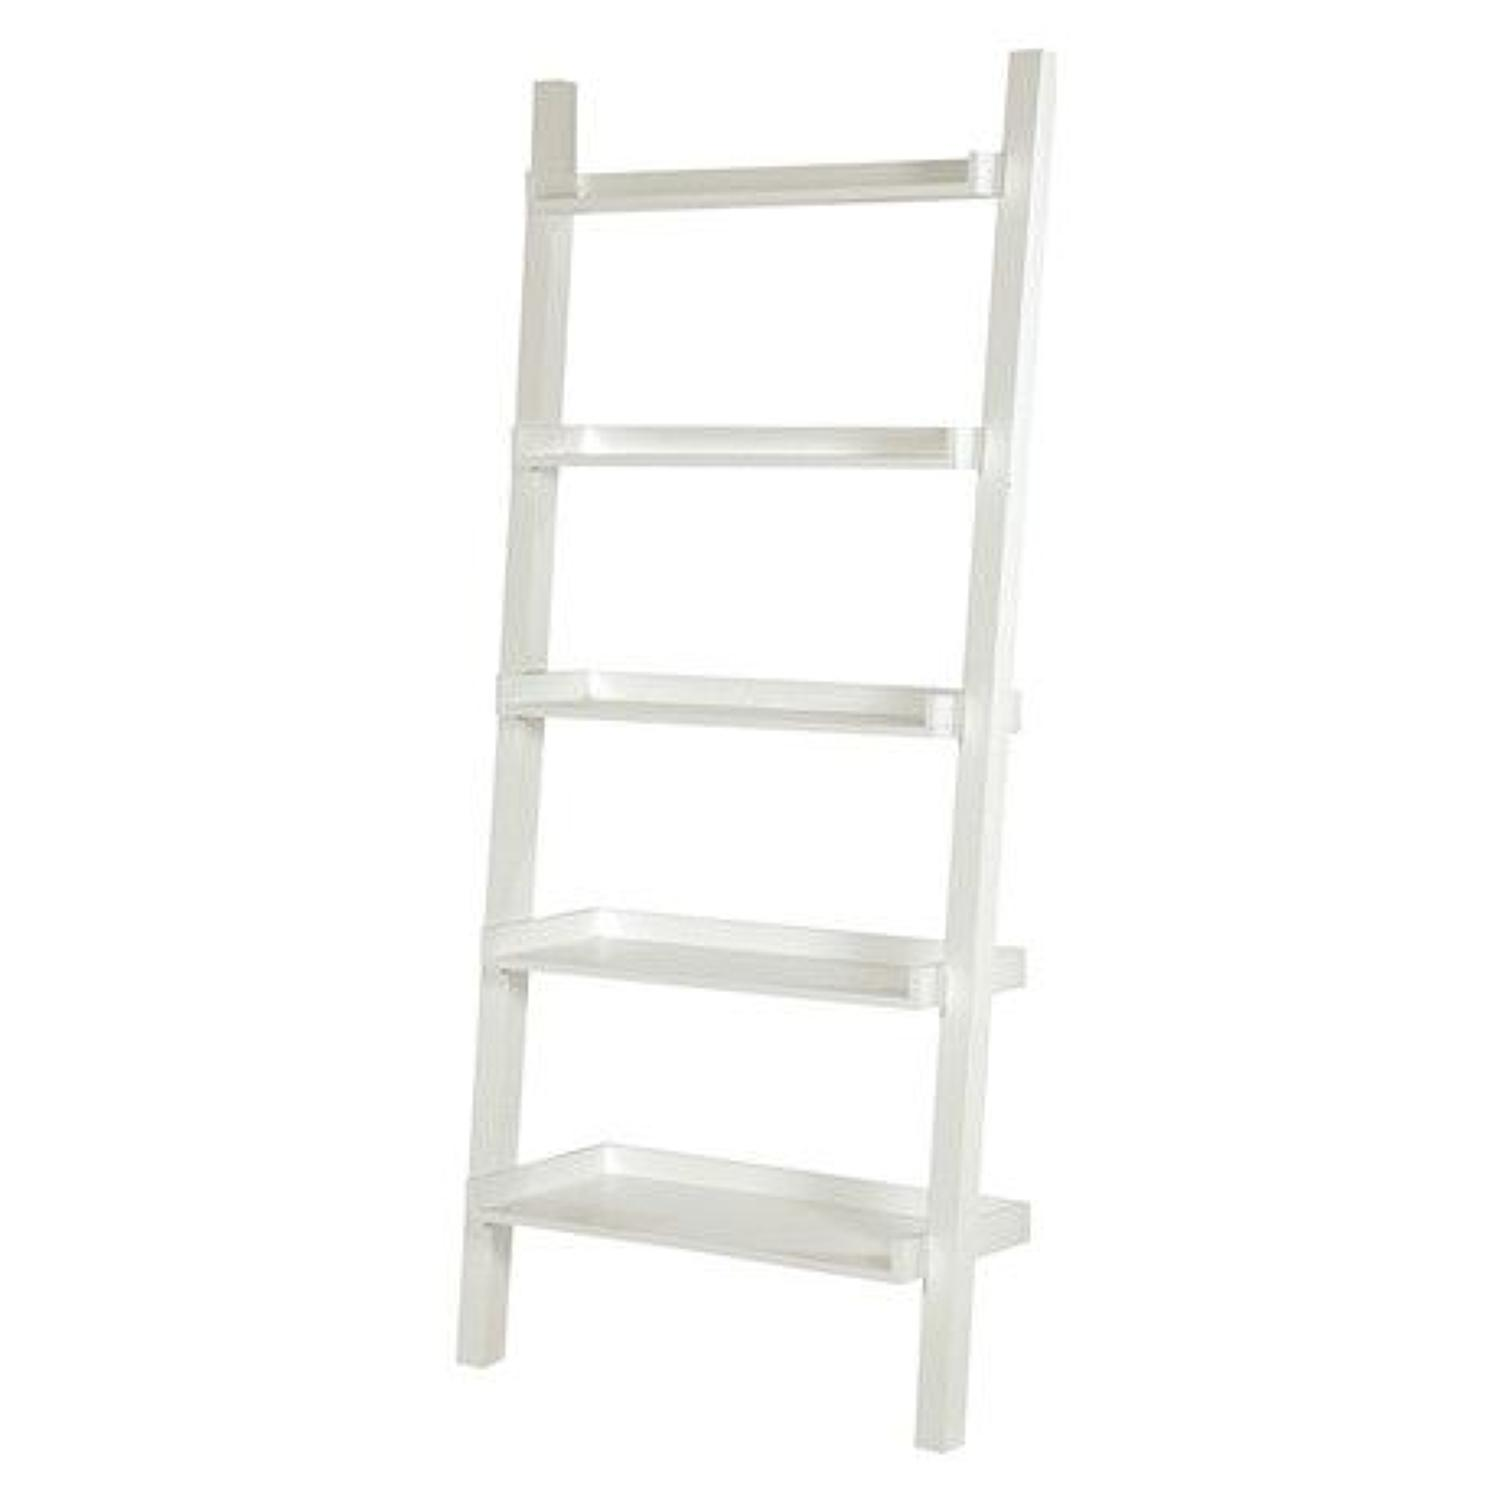 White ladder style shelving unit